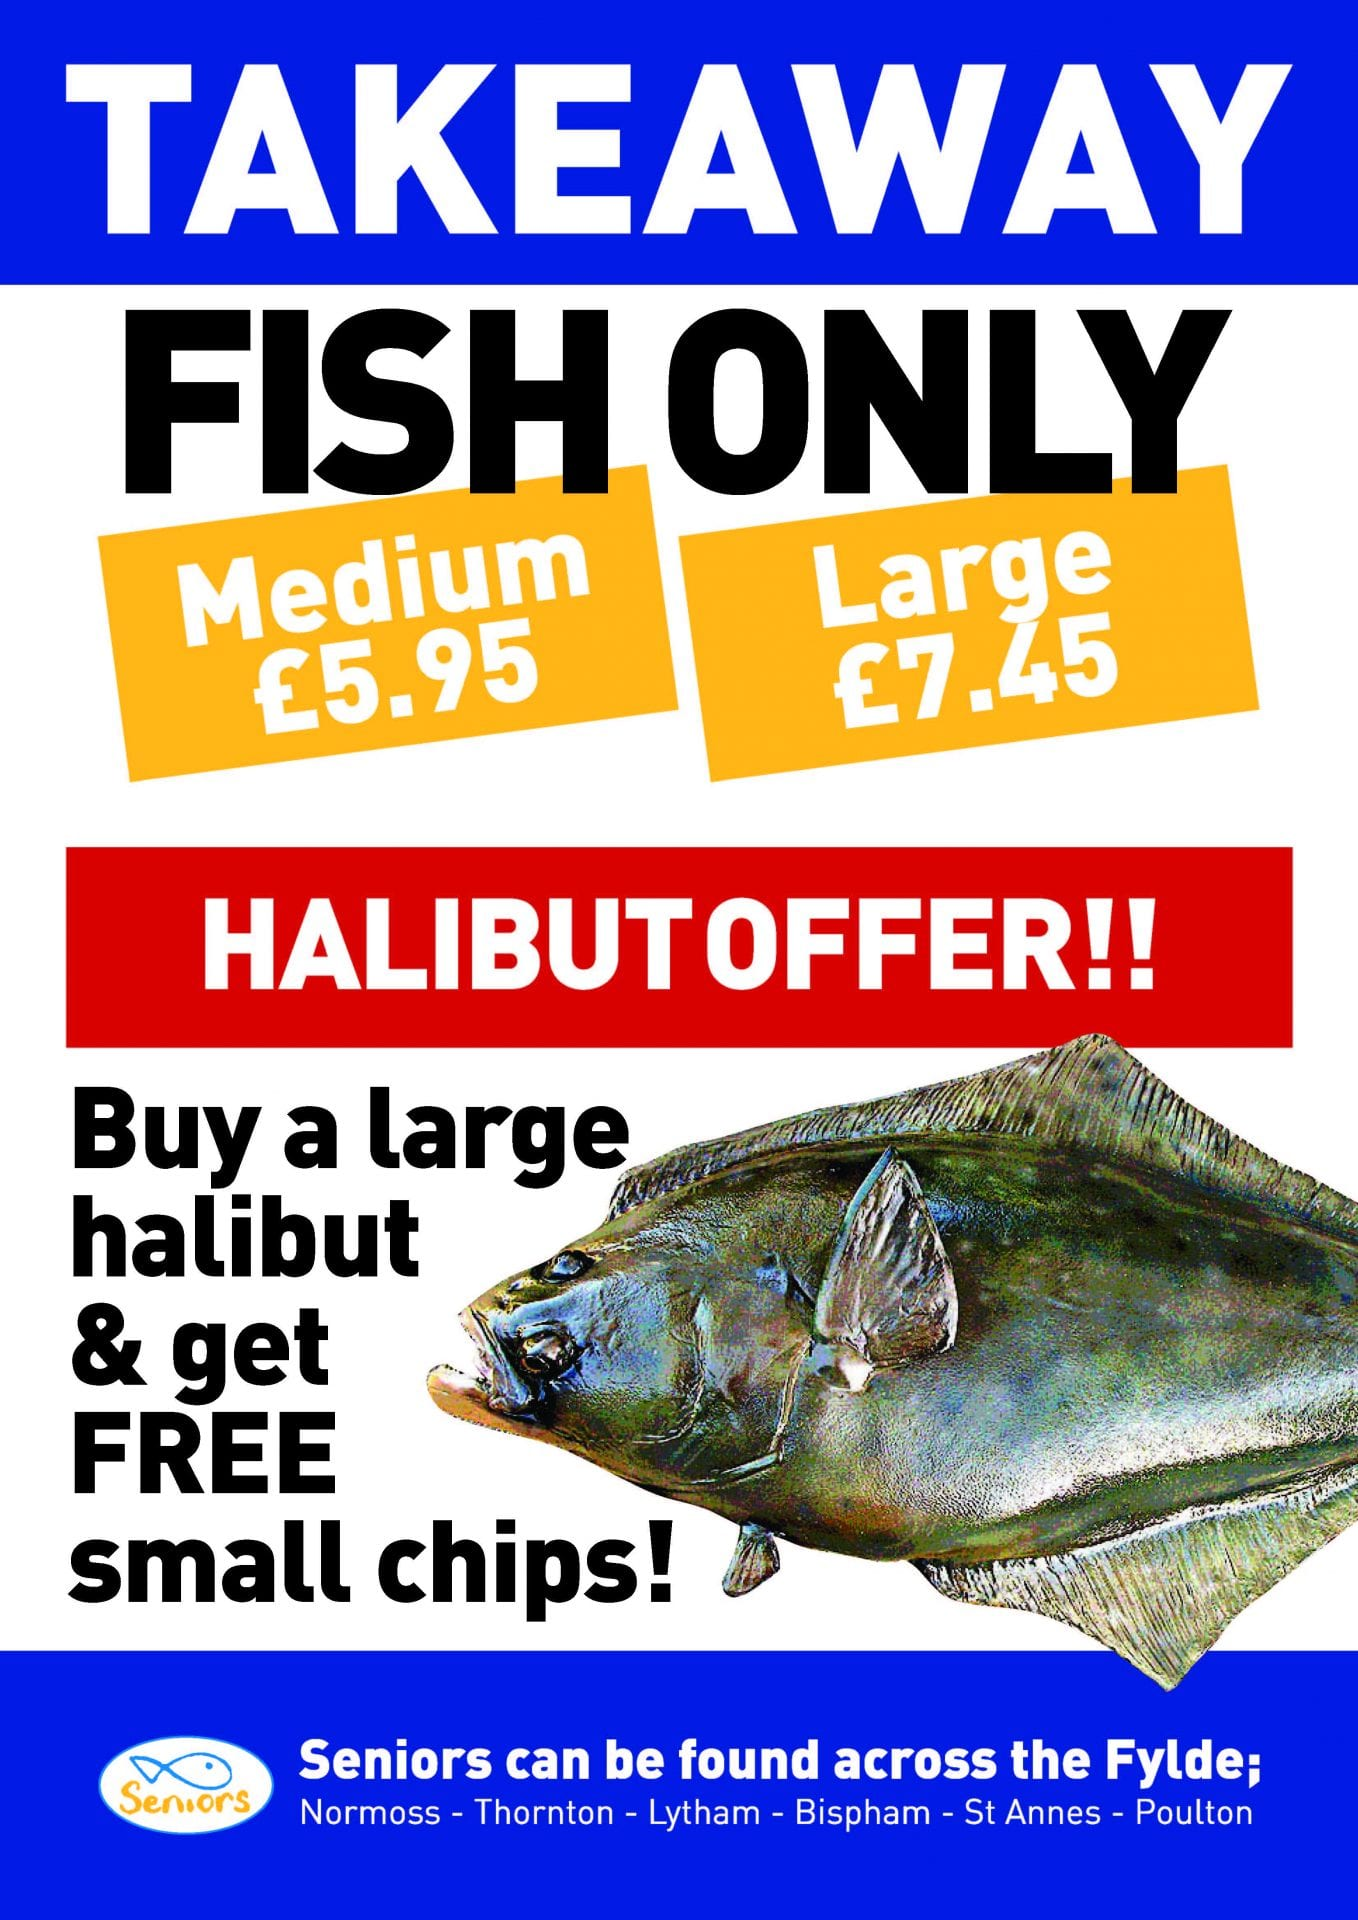 Halibut Takeaway offer at Seniors fish and chips